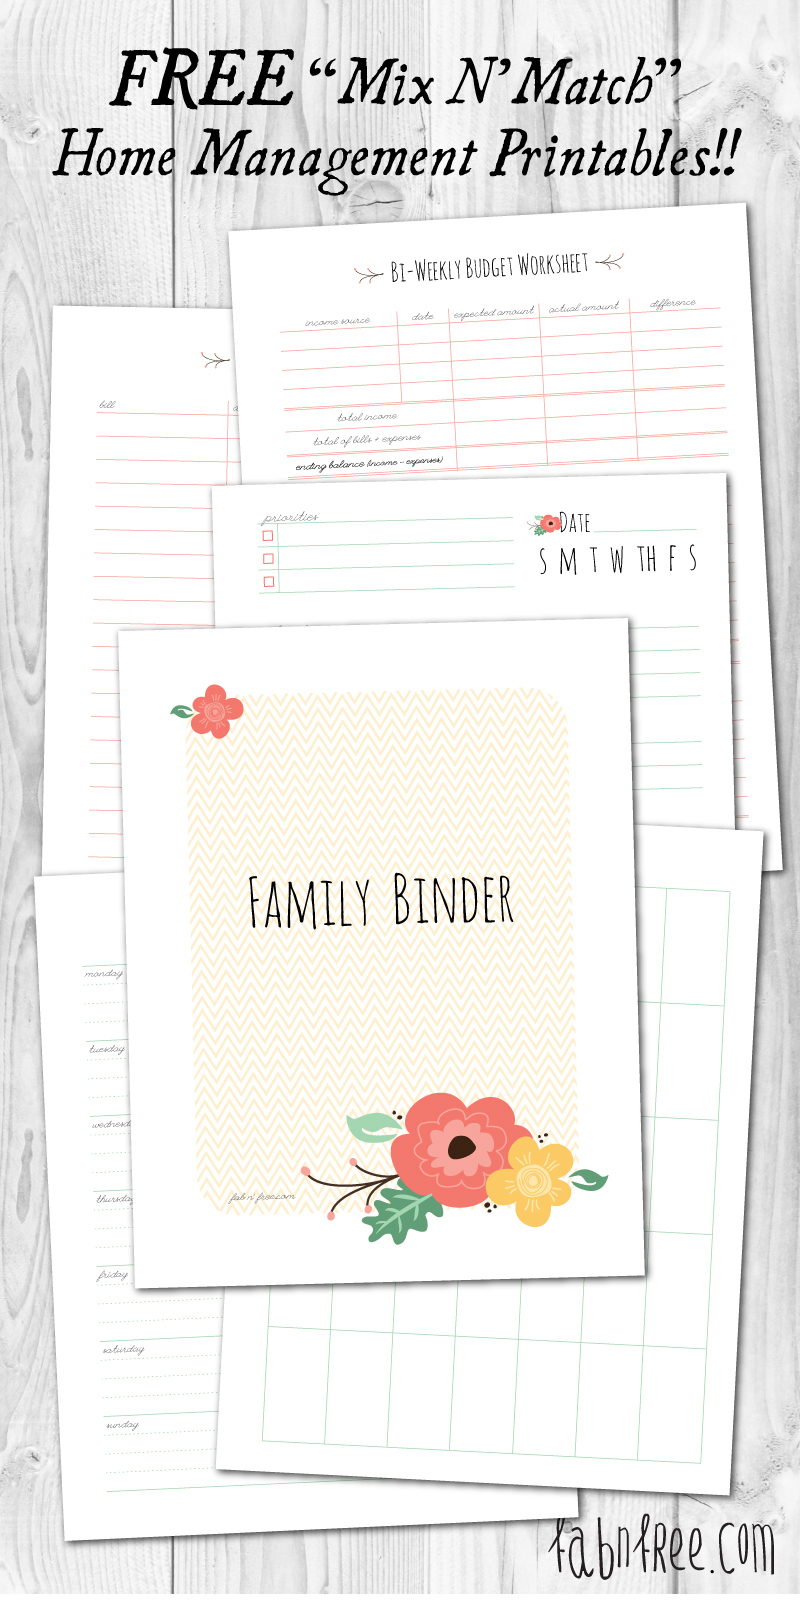 More Than 200 Free Home Management Binder Printables | Fab N' Free - Free Printable Household Binder